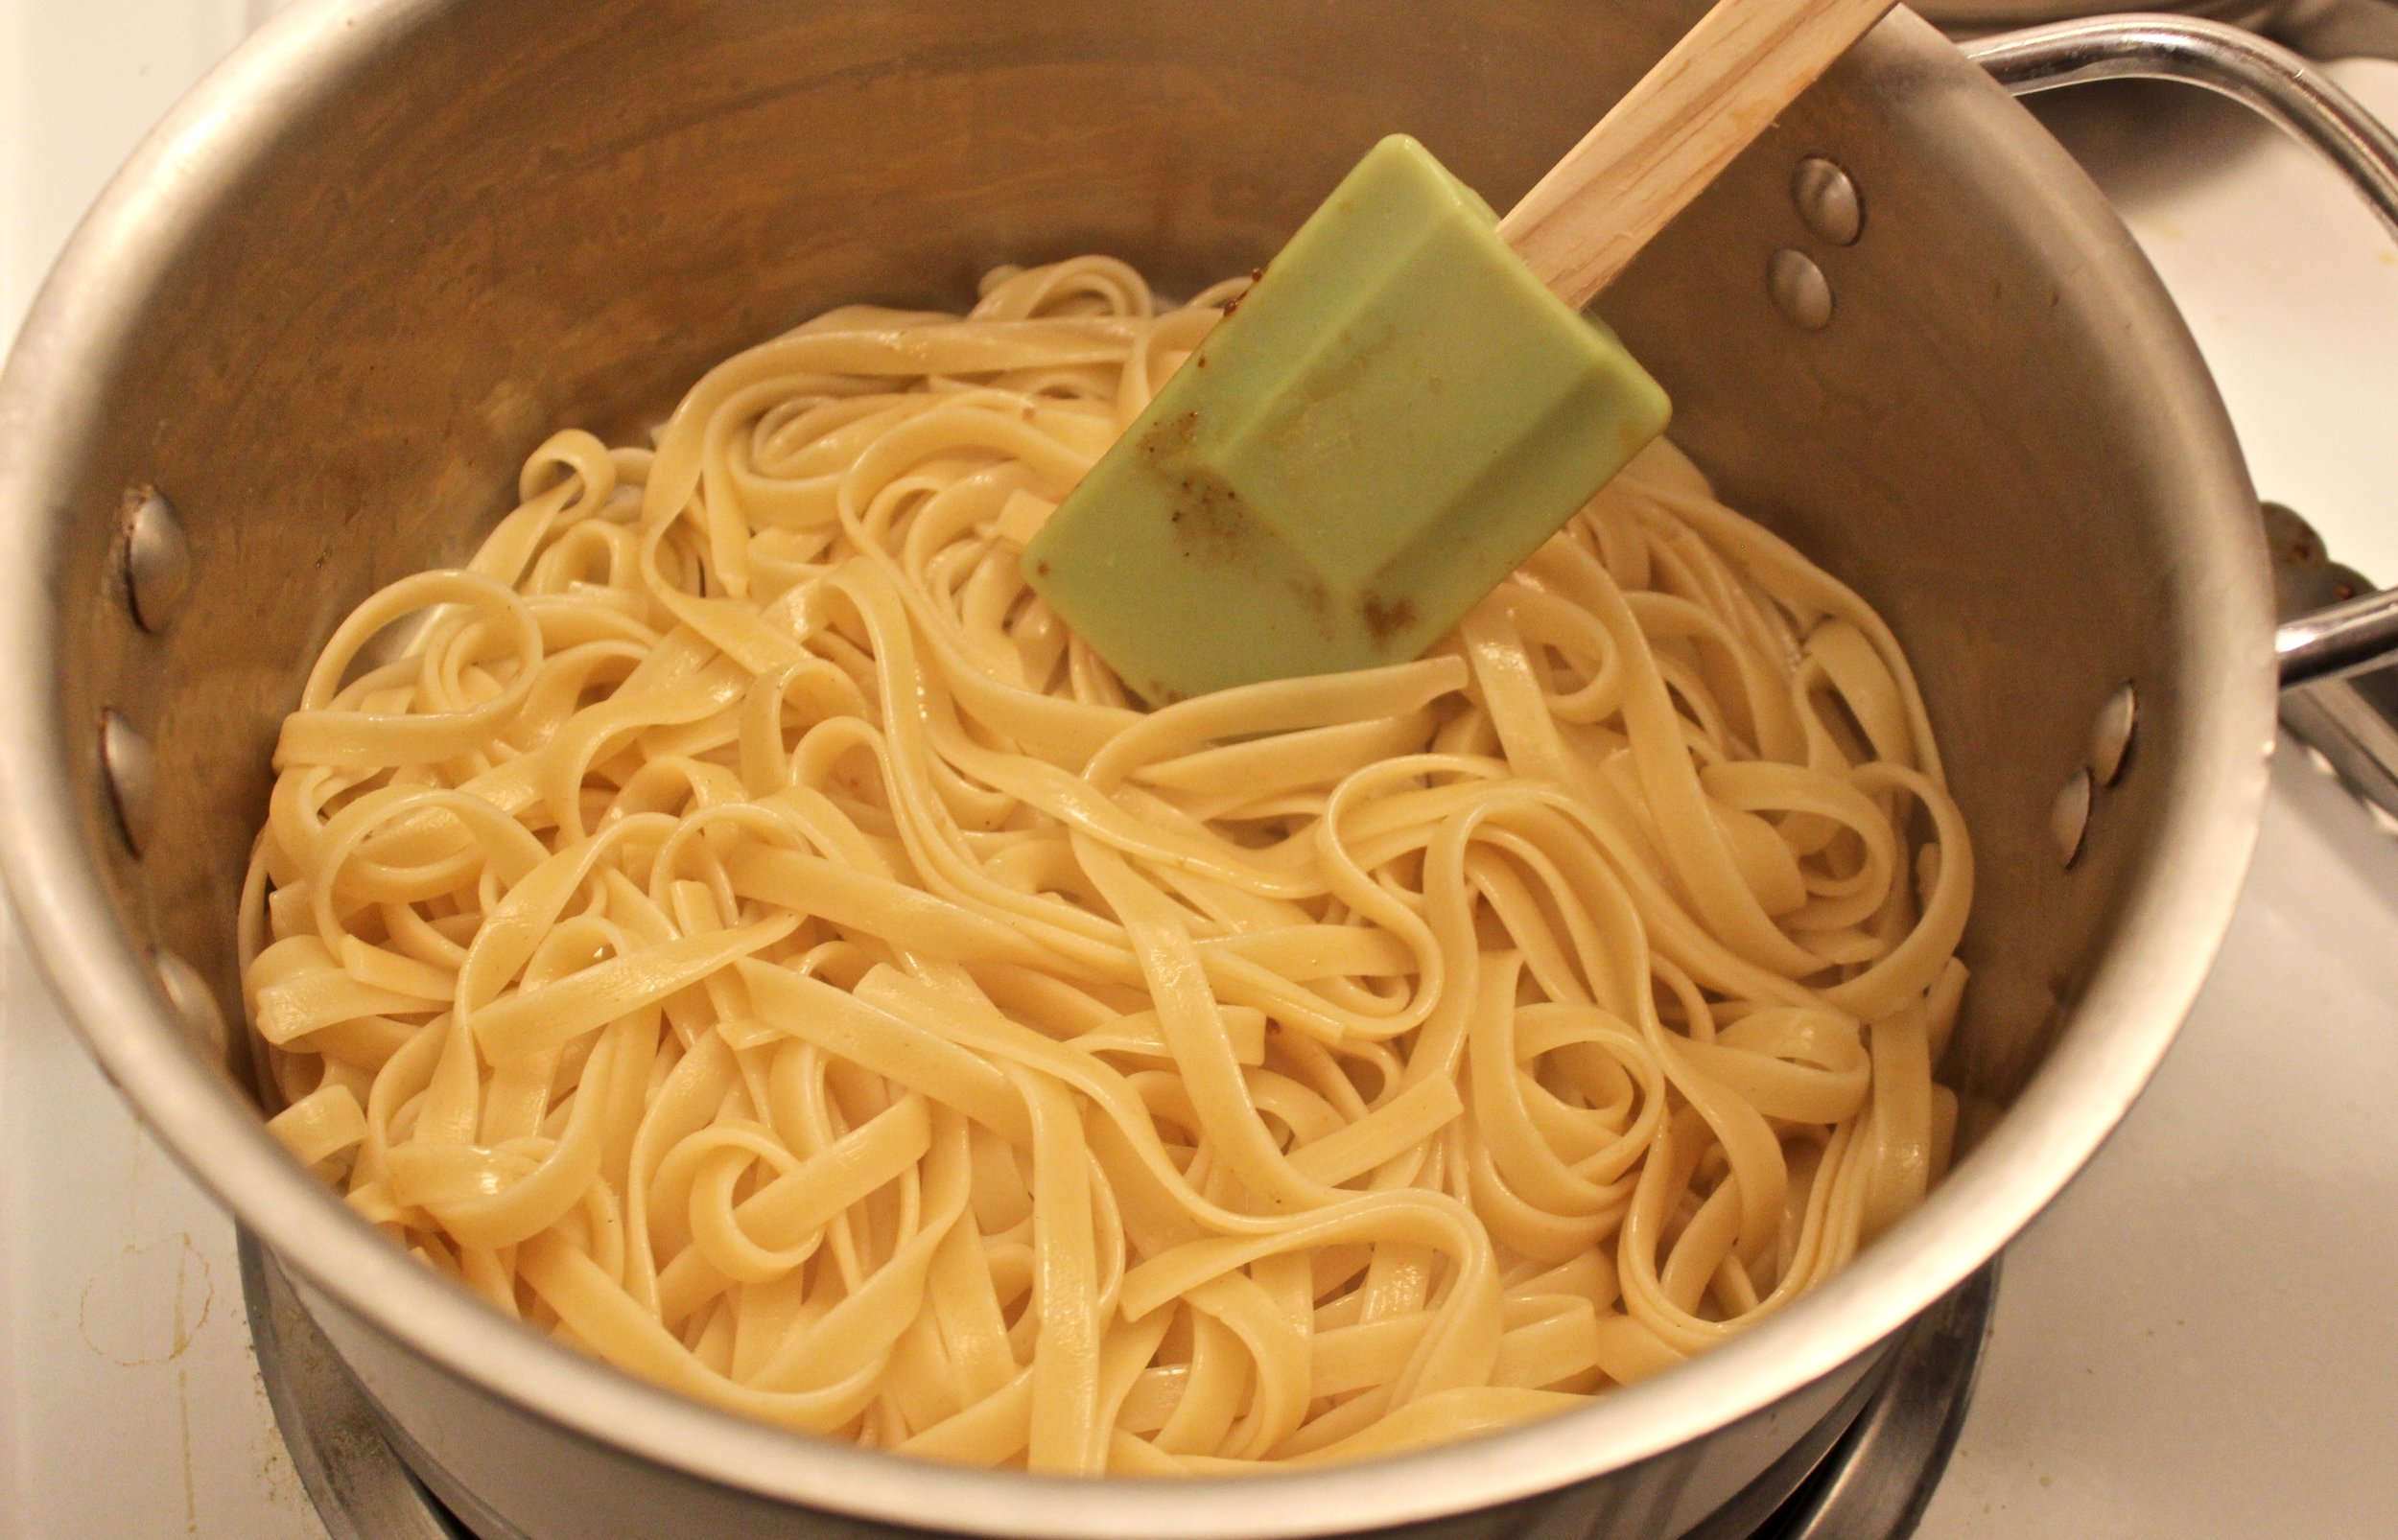 22. Cooked Noodles